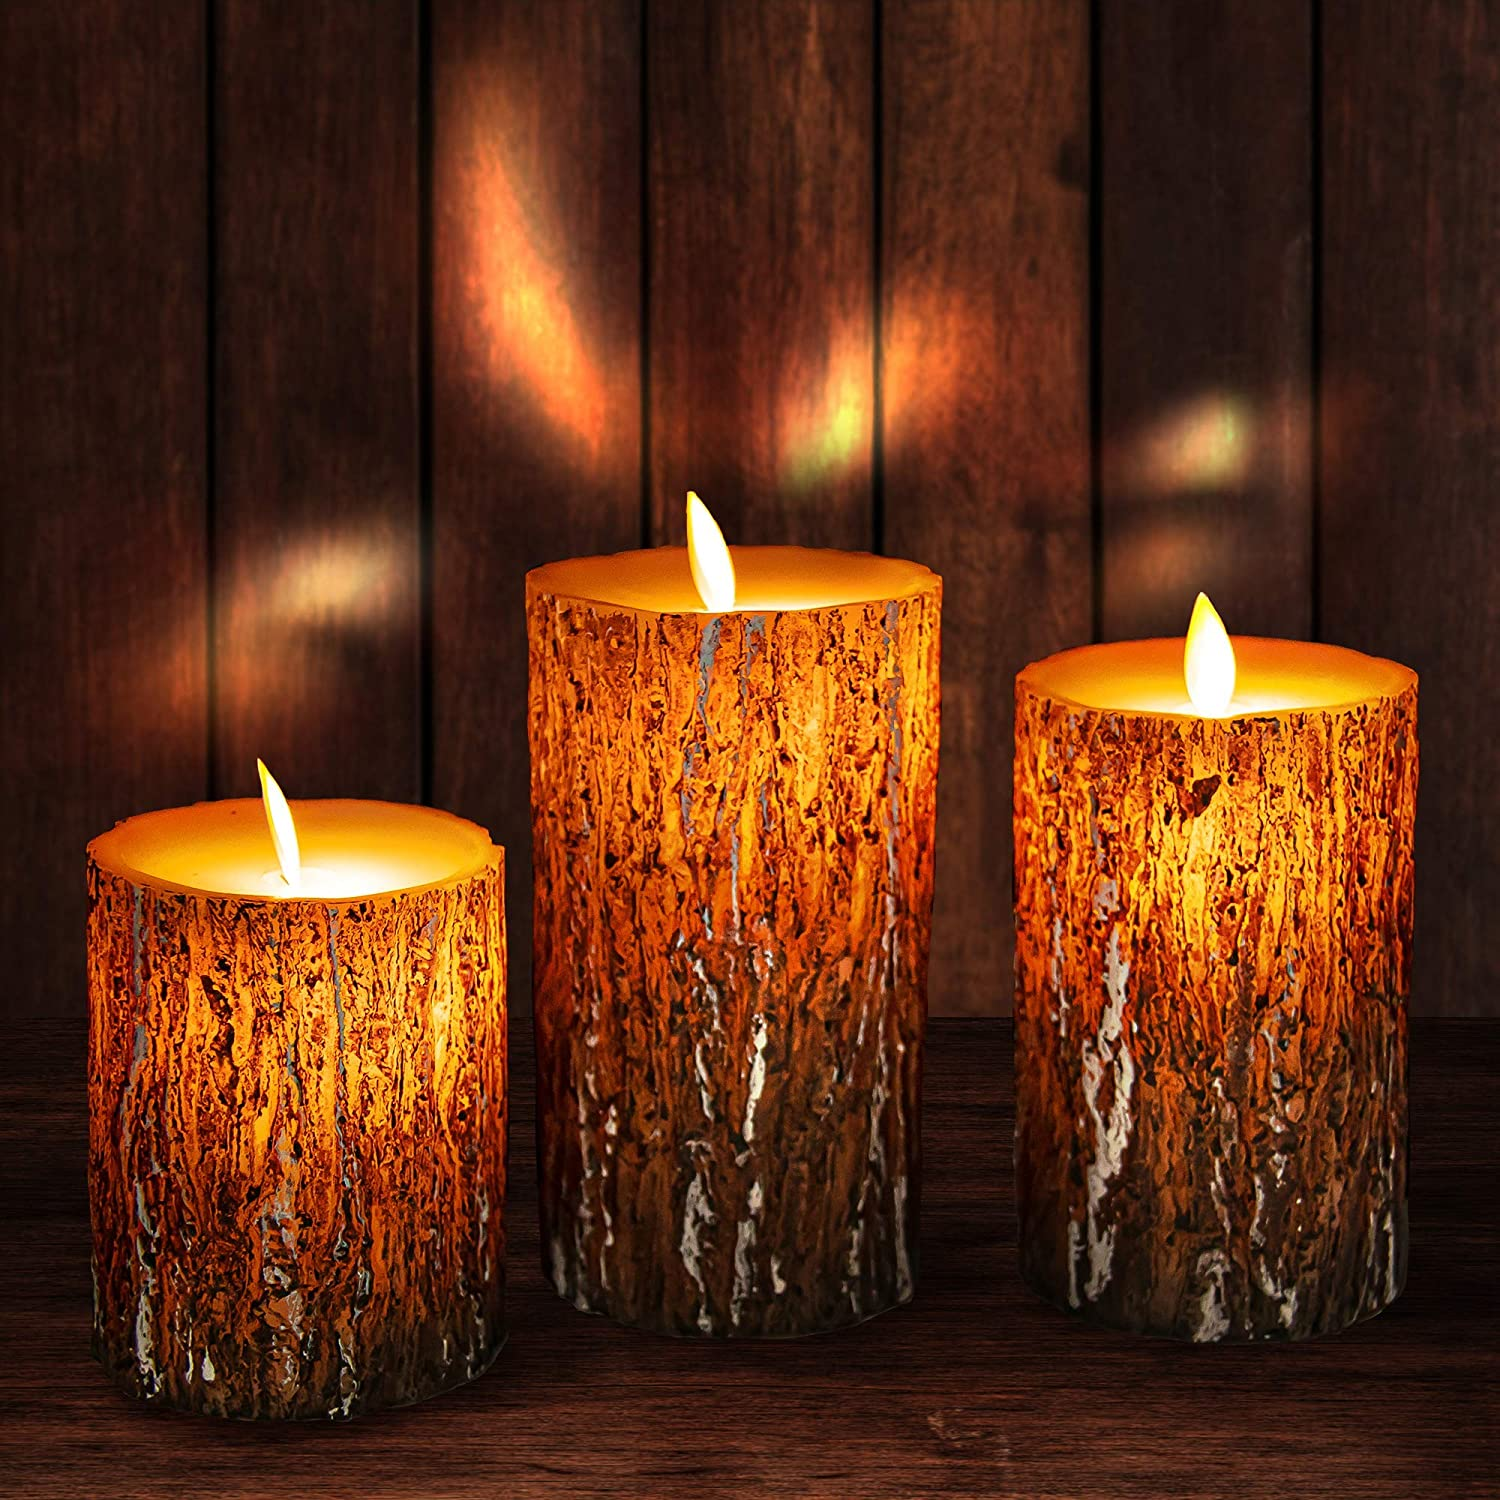 """Flameless Candles Led Candles, Battery Operated Candles Fake Candles with Real Wax, Remote Control, 24-Hour Timer Function, 2 AA Battery, Realistic Dancing Electric Candles 4"""" 5"""" 6"""" Pack of 3"""